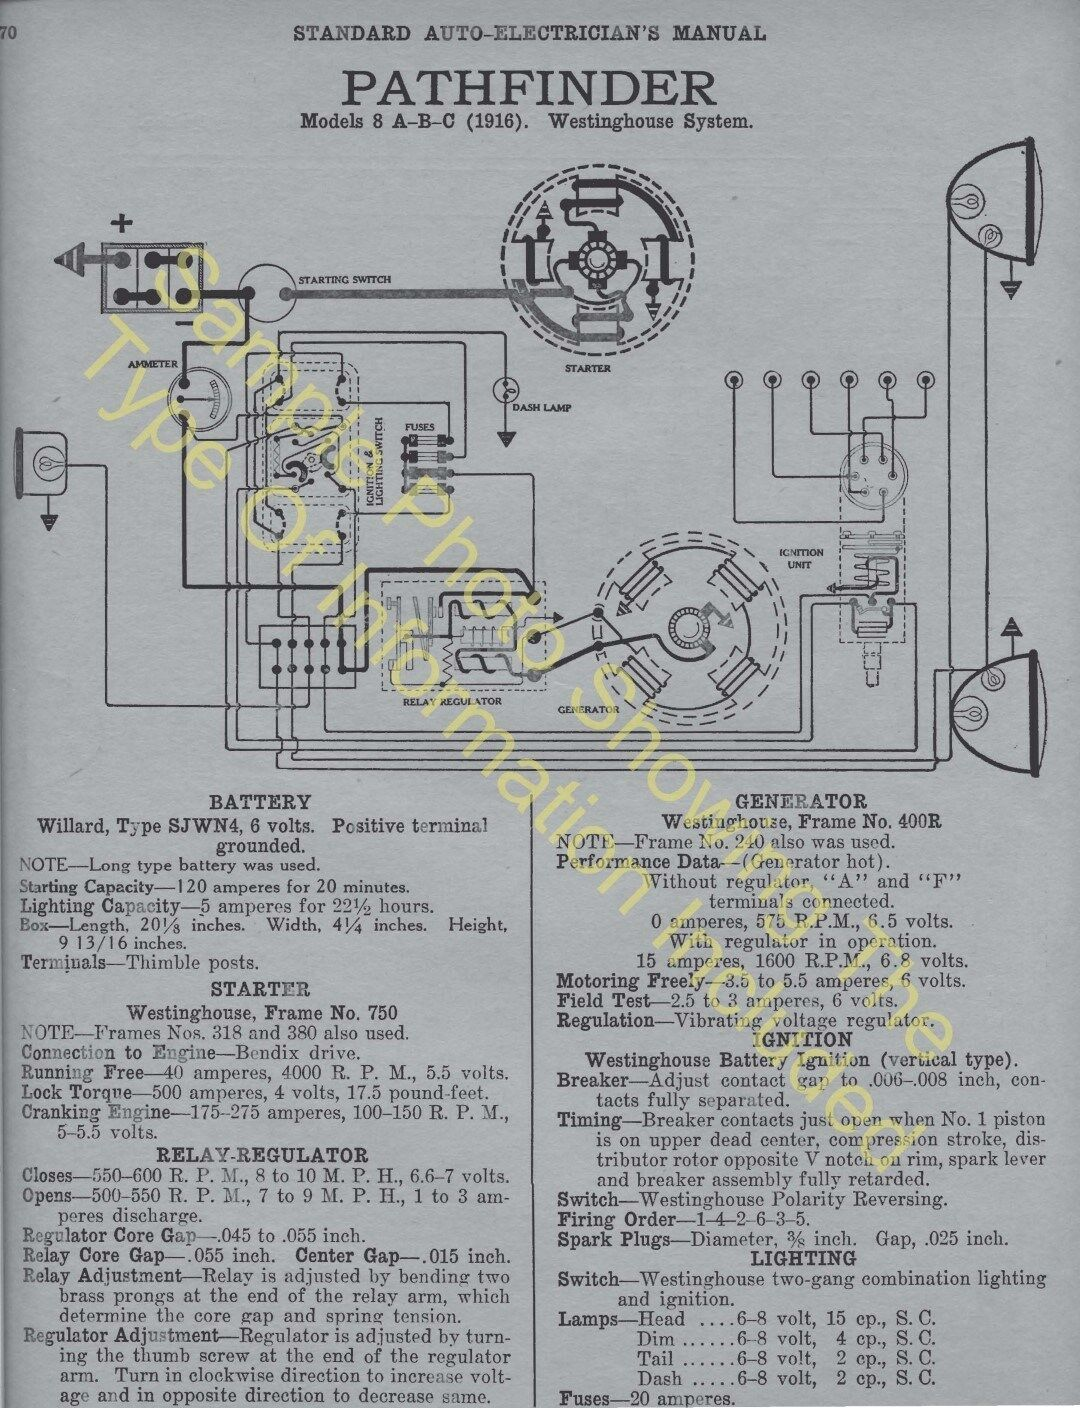 1917 1918 Hudson Super Six Car Wiring Diagram Electric System Specs. 1 Of 1only 5 Available. Ford. Wiring Diagram Ford 10505a Voltage Regulator At Scoala.co